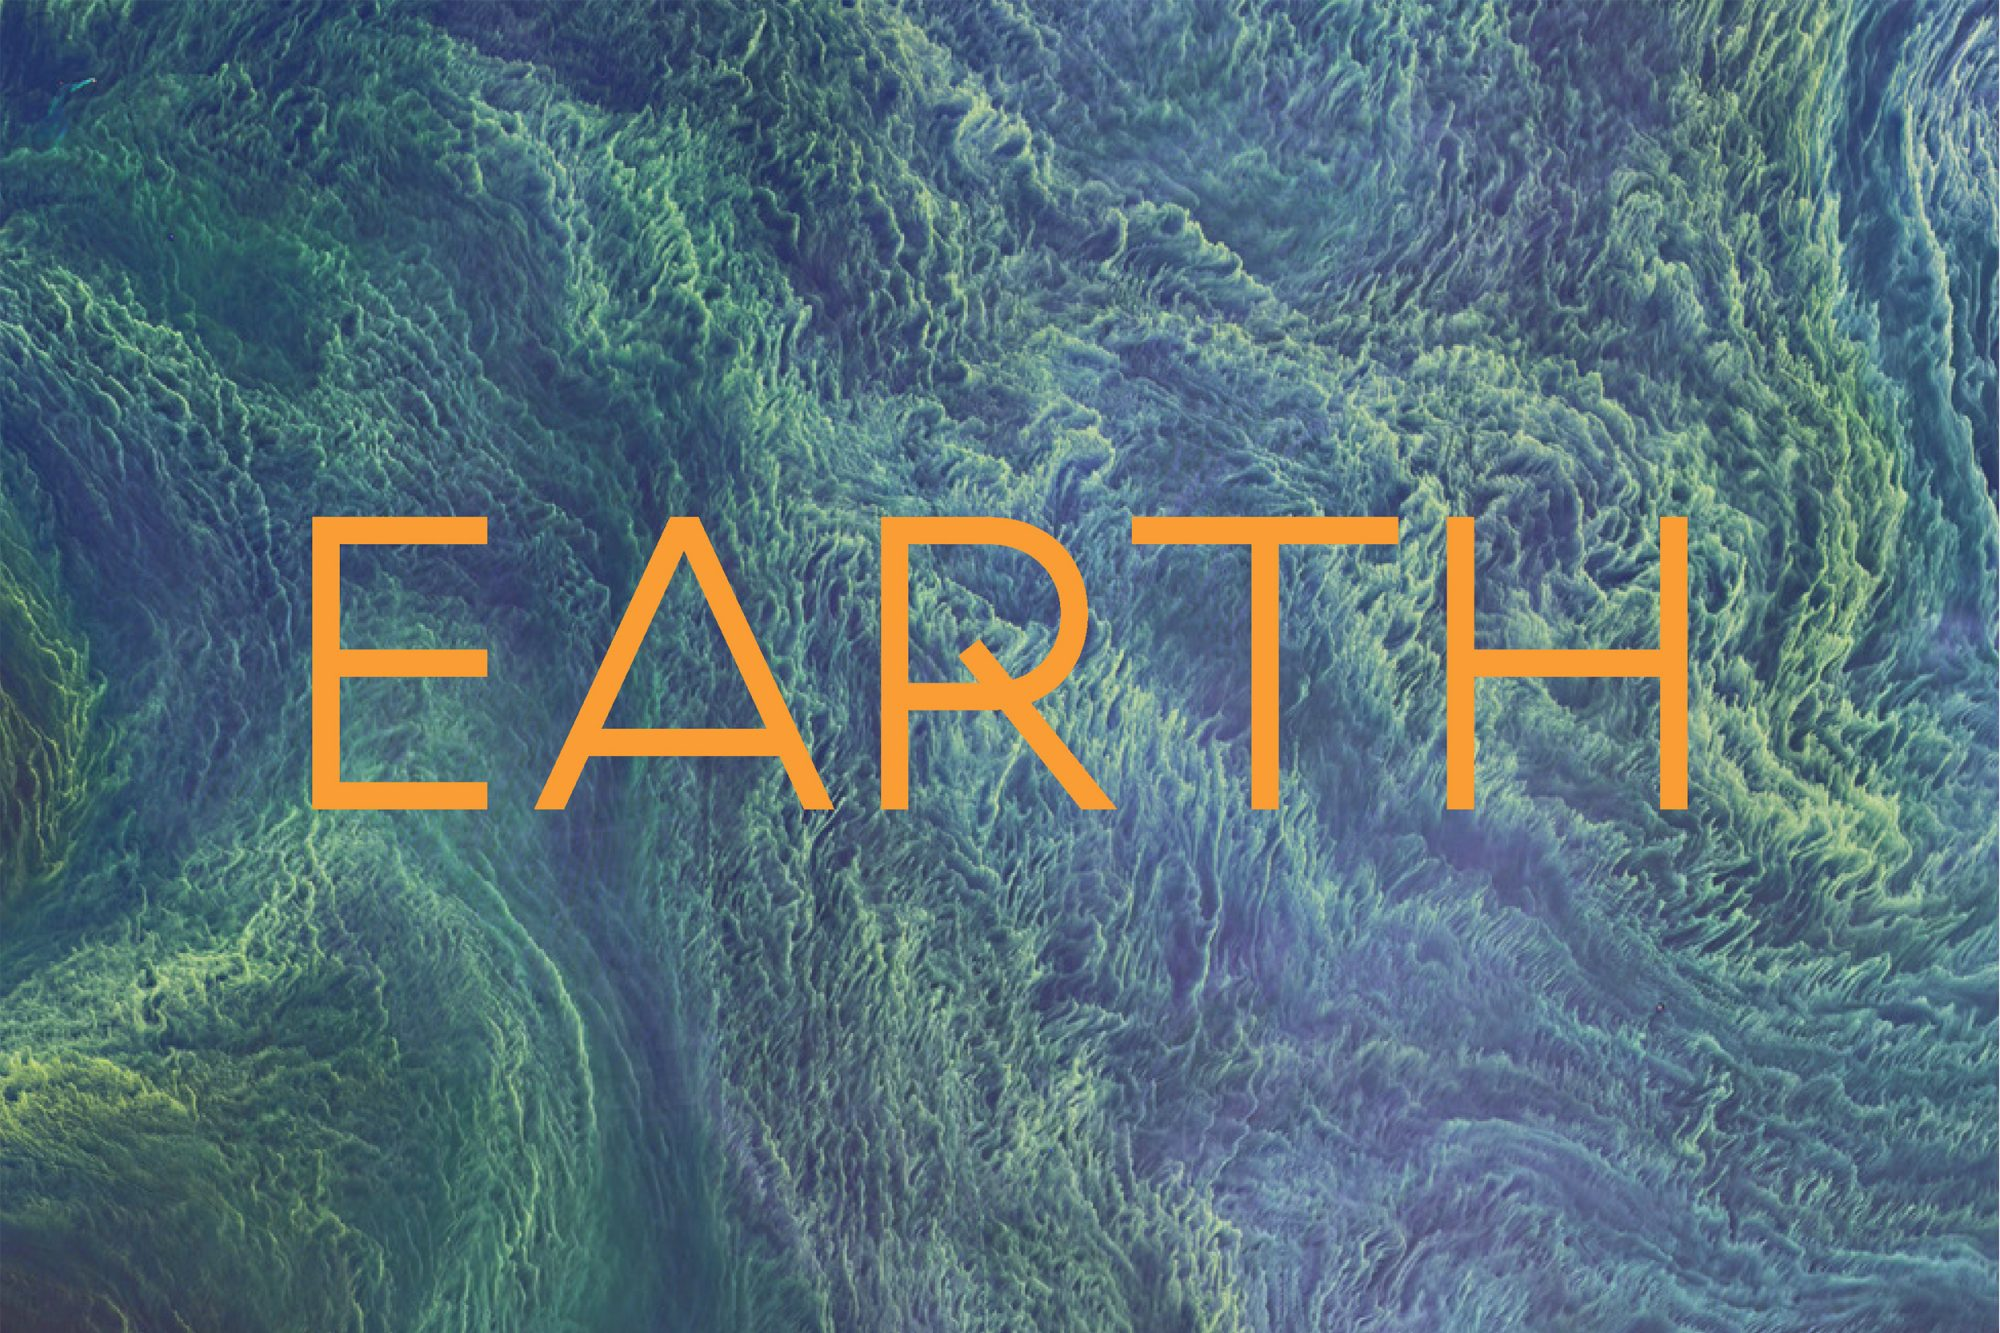 illustration representing Earth, with the word Earth overlaid